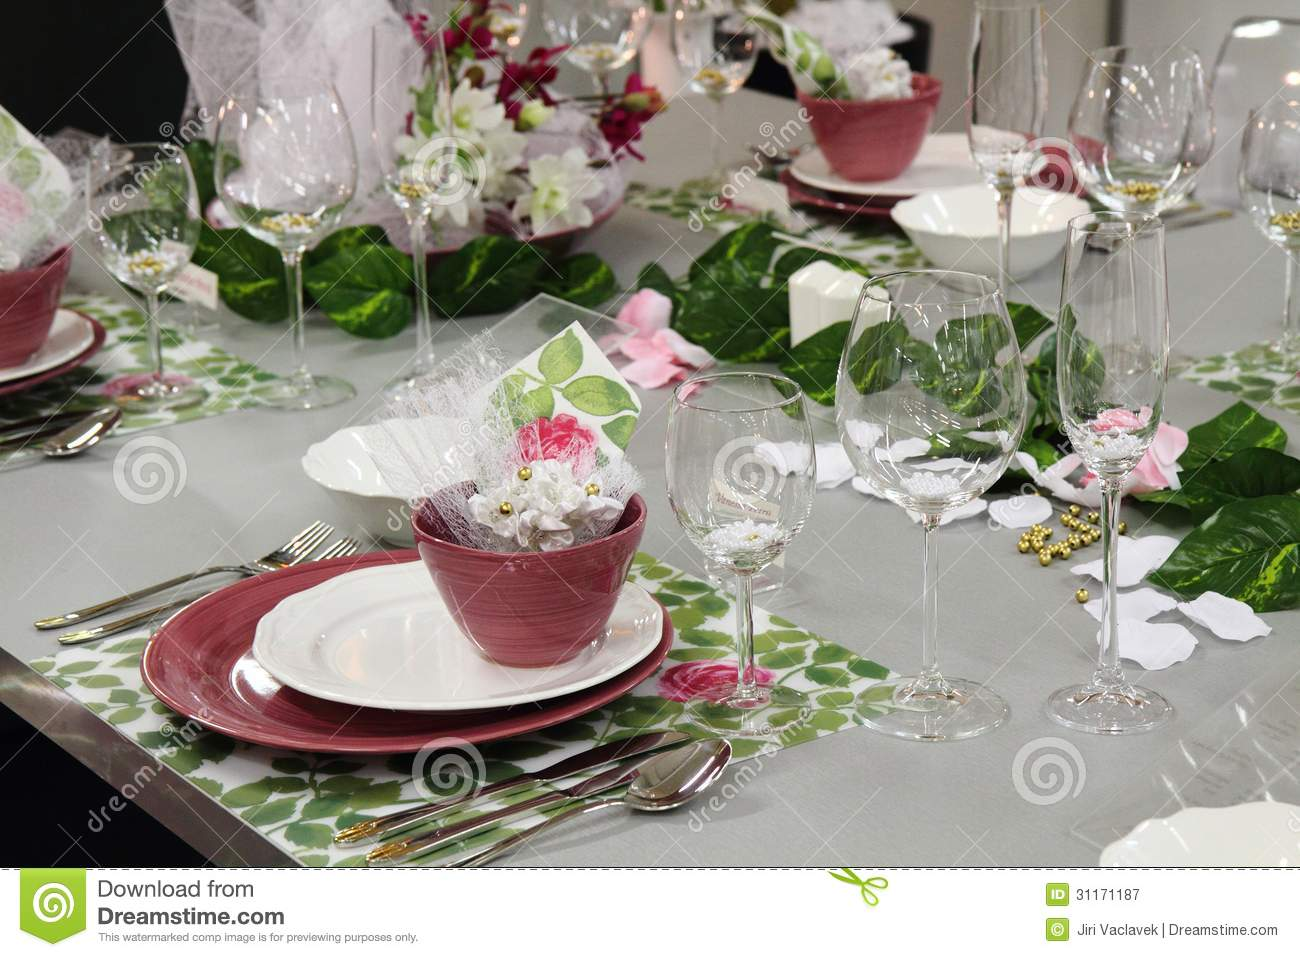 detail wedding table decorations royalty free stock photography image 31171187. Black Bedroom Furniture Sets. Home Design Ideas